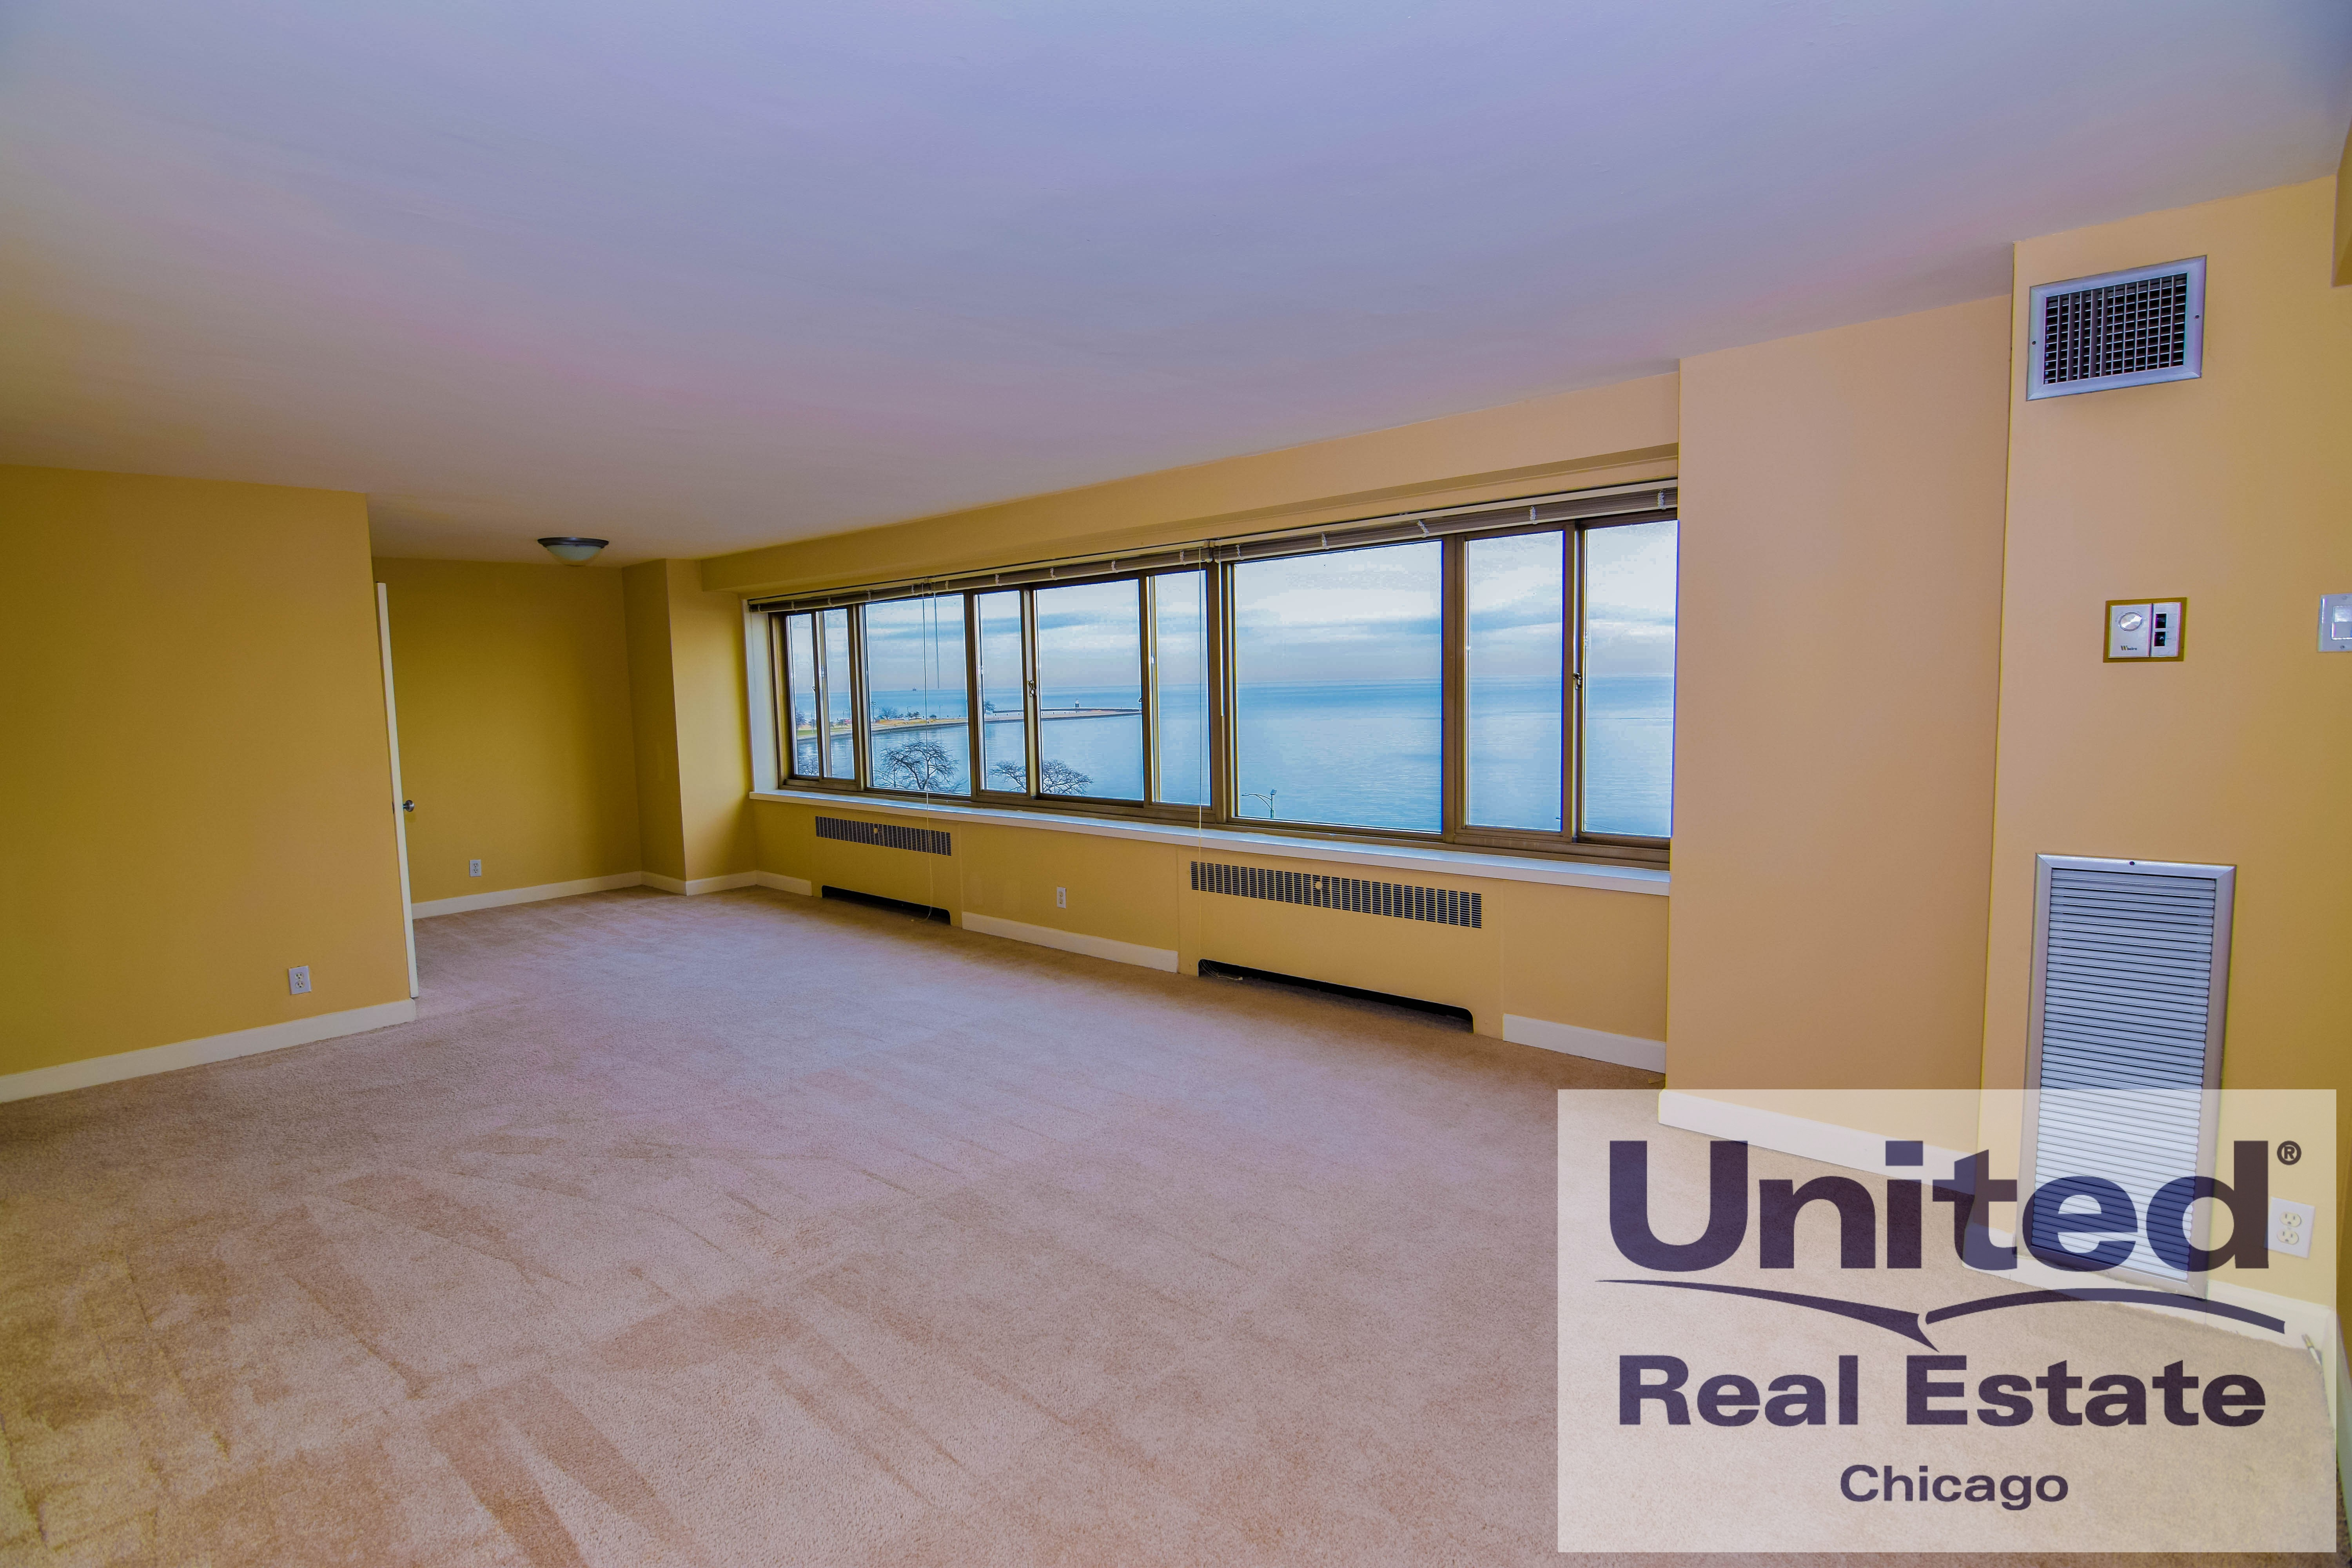 N Lake Shore Dr E Banks St 2 1814 Chicago Il 60610 2 Bedroom Apartment For Rent For 2 938